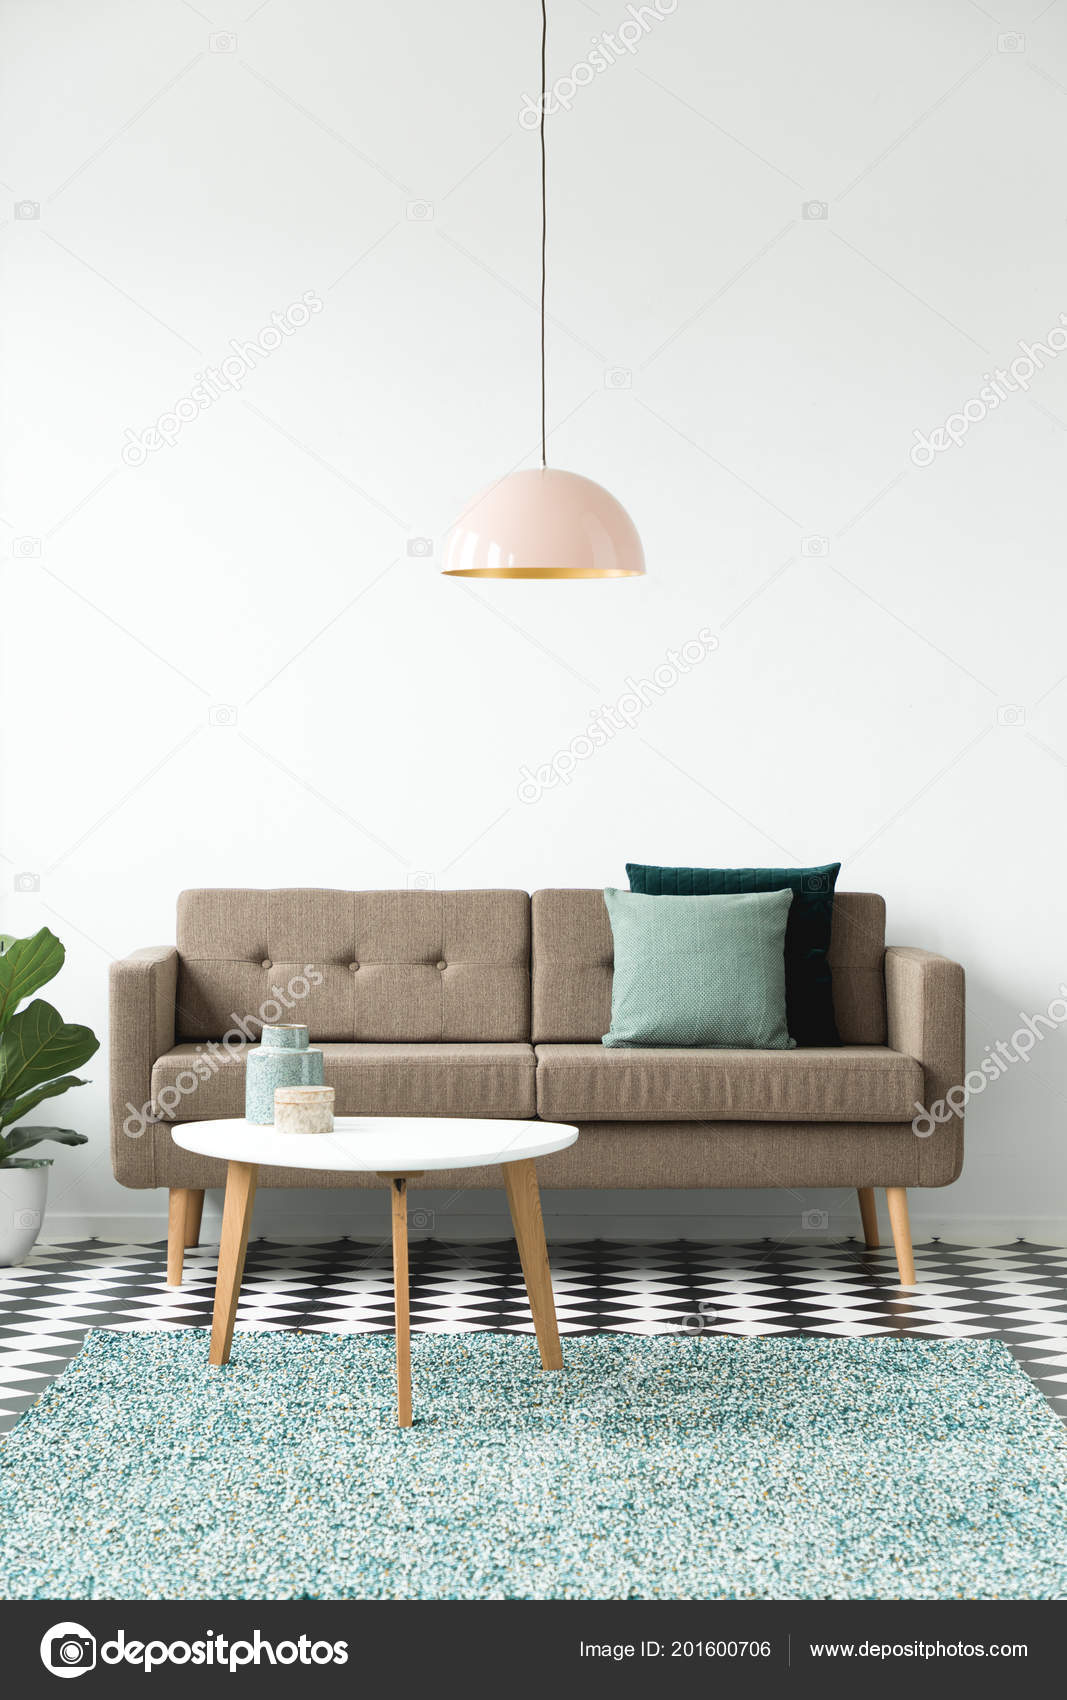 Front view of a sofa with pillows coffee table chandelier and green carpet set on a white wall in living room interior photo by